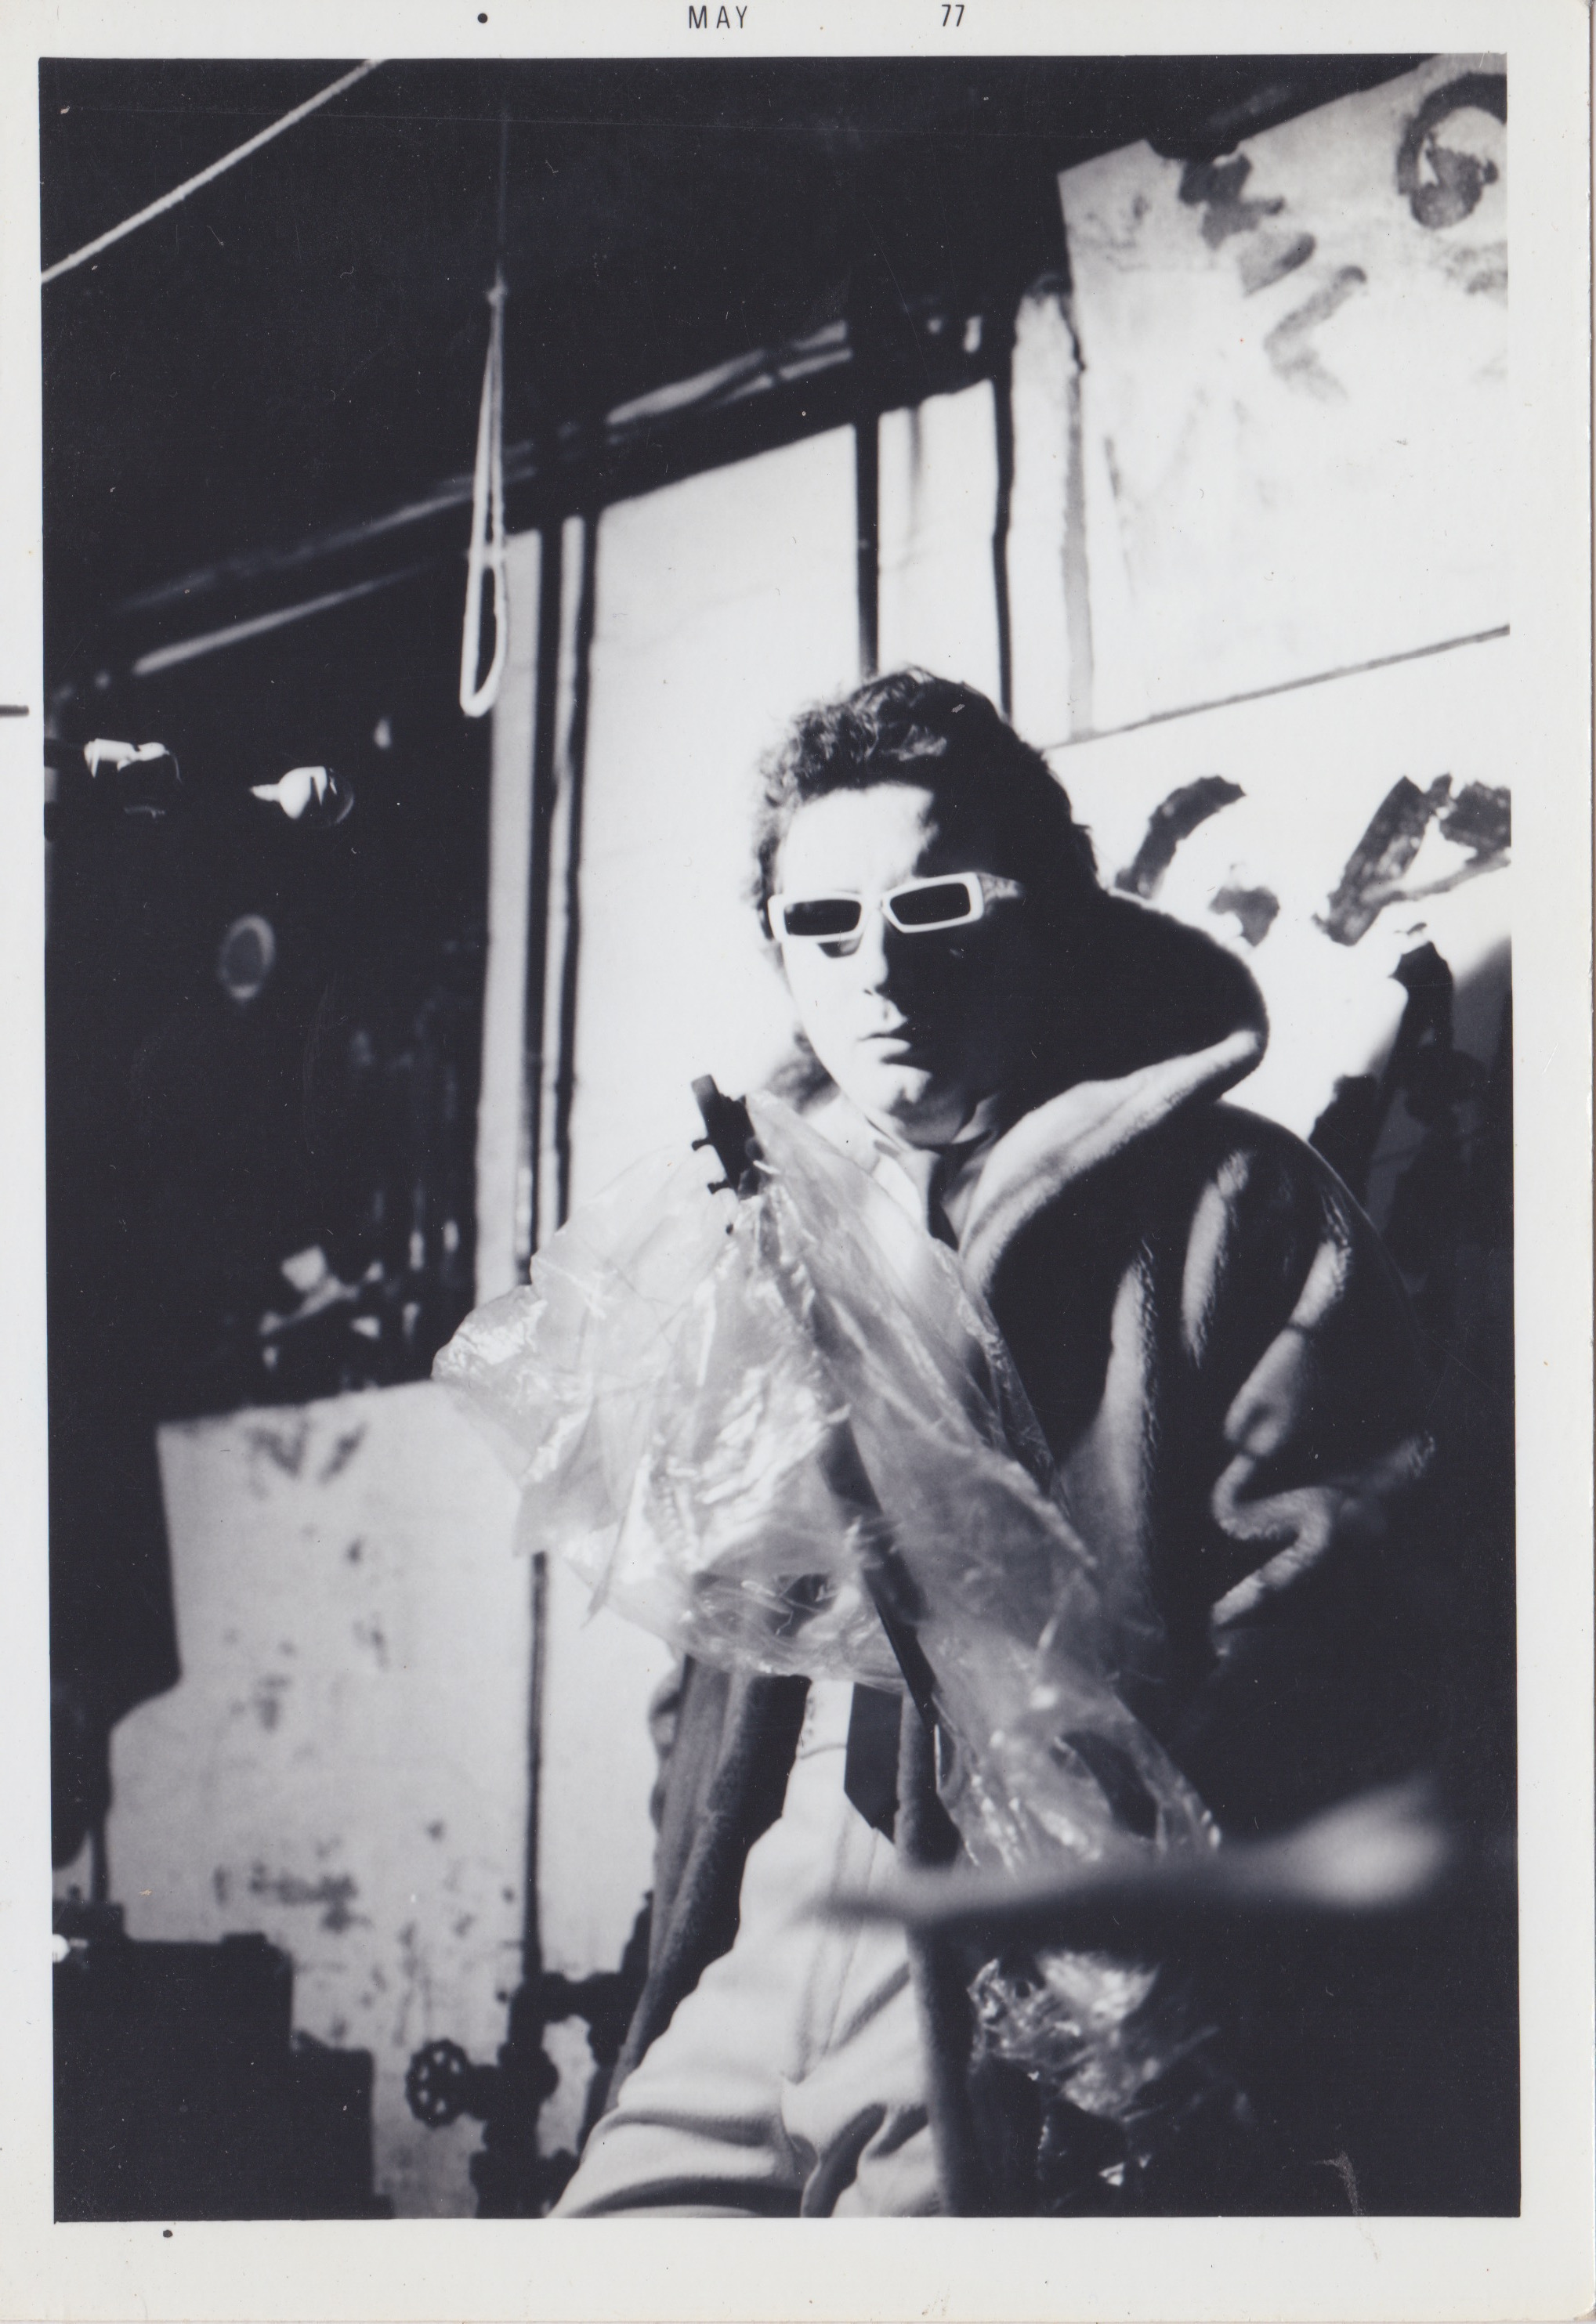 gary wilson glasses weirdo music forever.jpeg